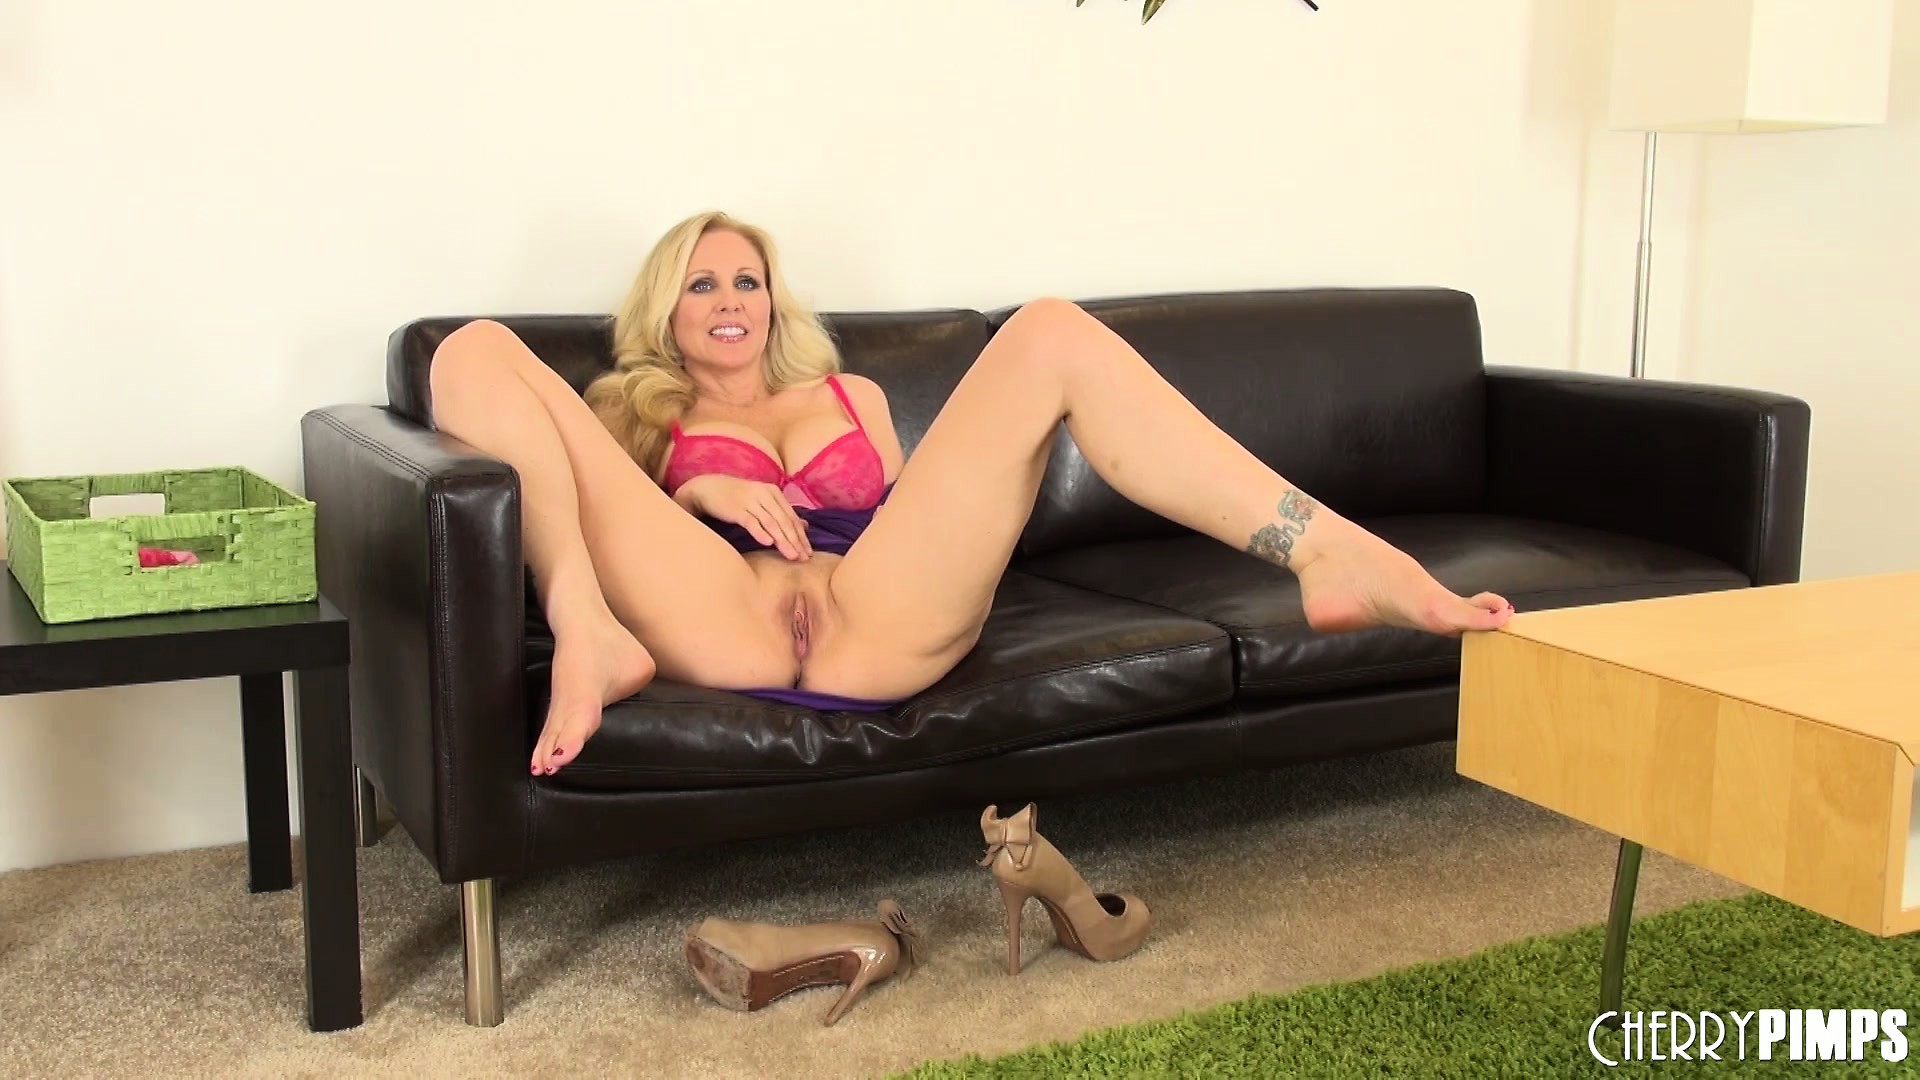 Porno Video of Julia Ann Likes To Pull Up Her Skirt And Diddle Her Twat On The Couch